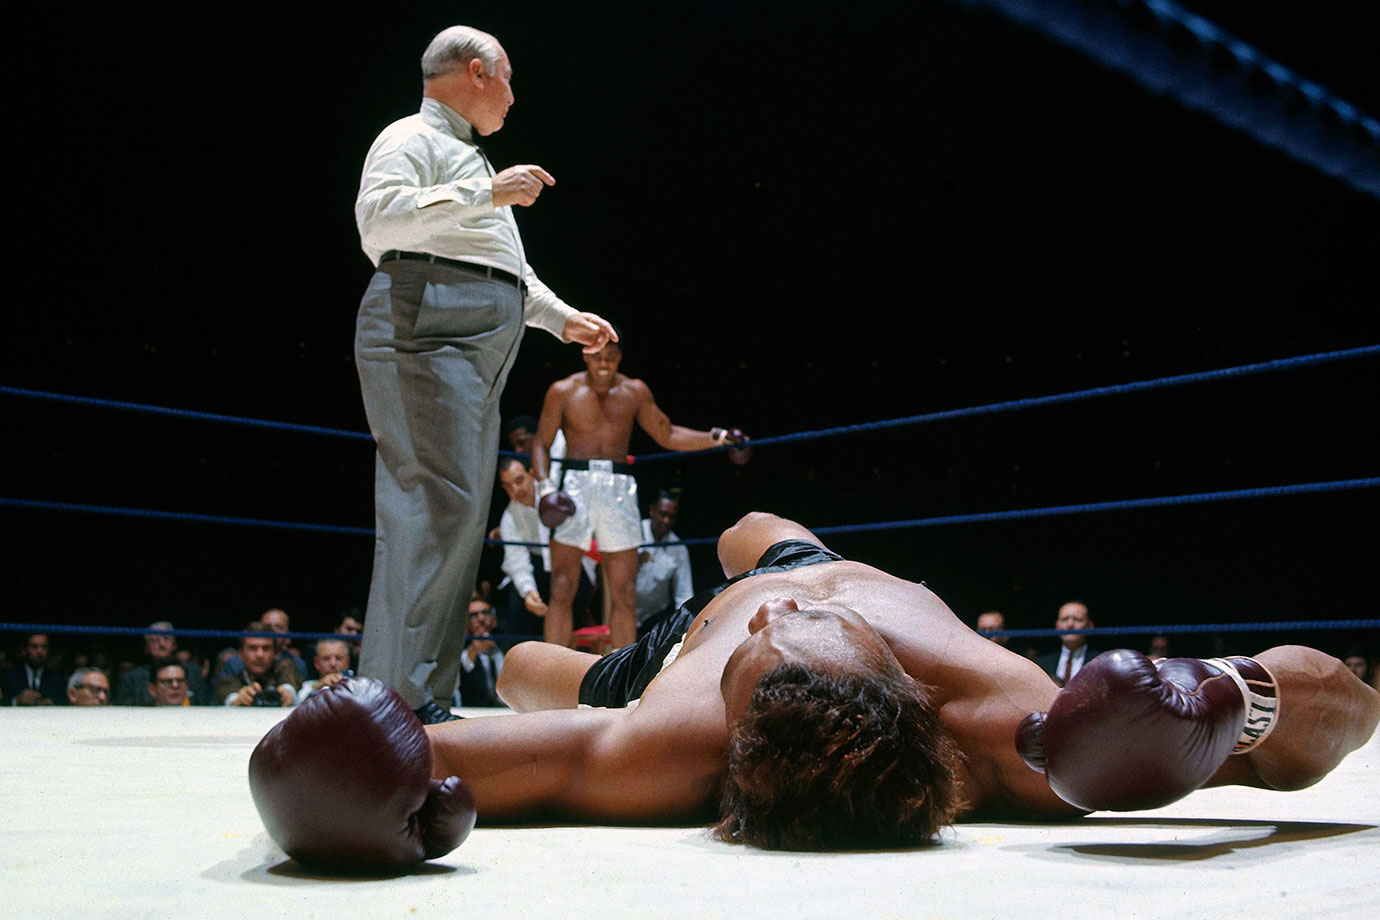 Float and sting: In a display of speed and combination punching unmatched in heavyweight history, Ali overwhelmed Williams from the start. The challenger, here down for the third time in round 2, would be saved by the bell before referee Harry Kessler could count him out, but it would only postpone the inevitable.